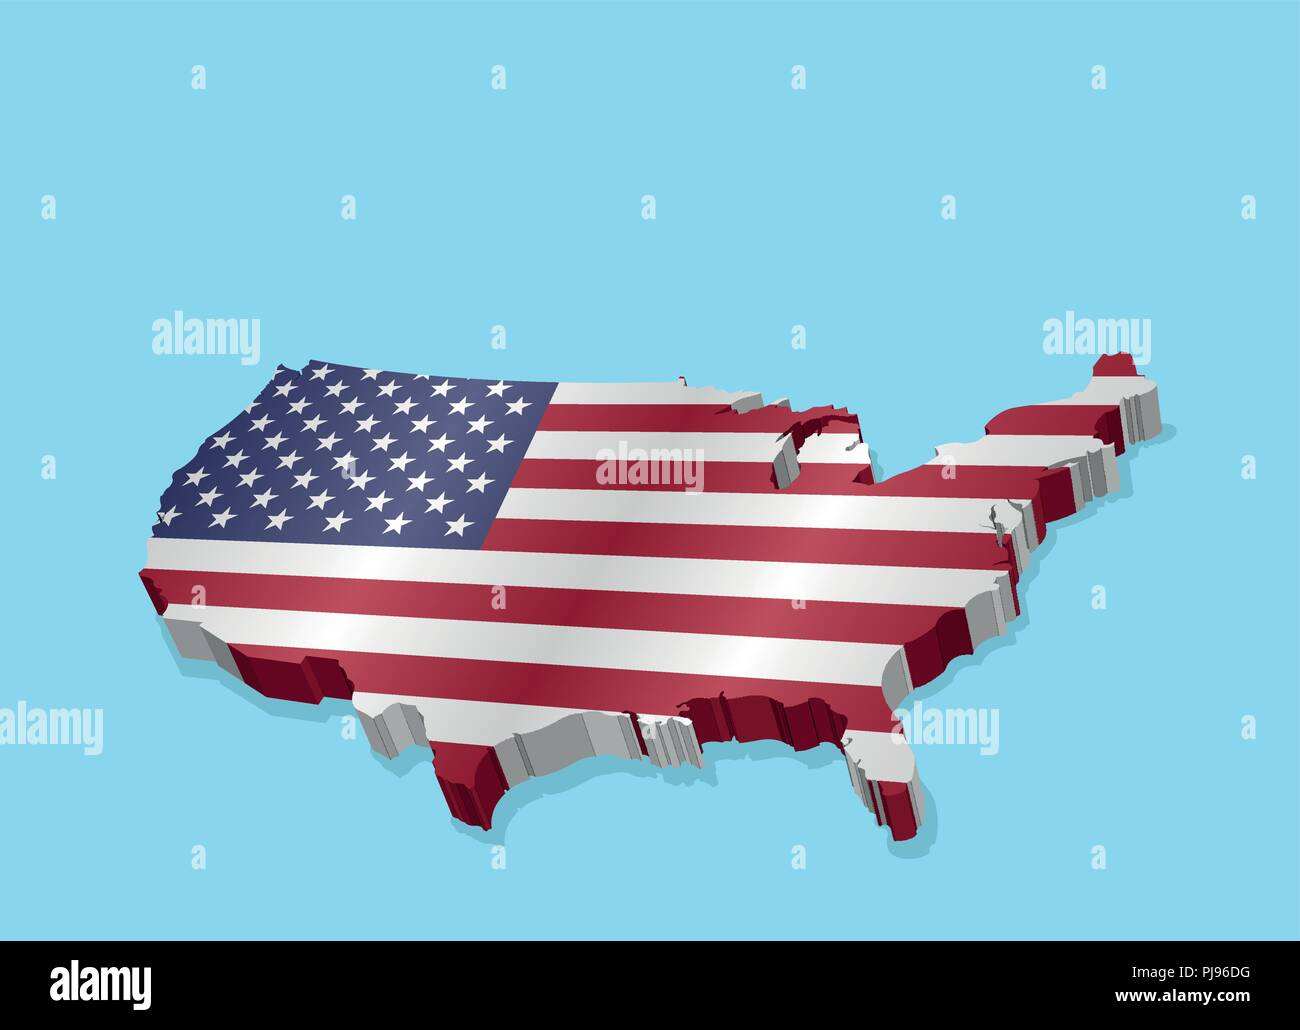 Three Dimensional Map of USA and American Flag. All the objects, shadows and background are in different layers. - Stock Vector